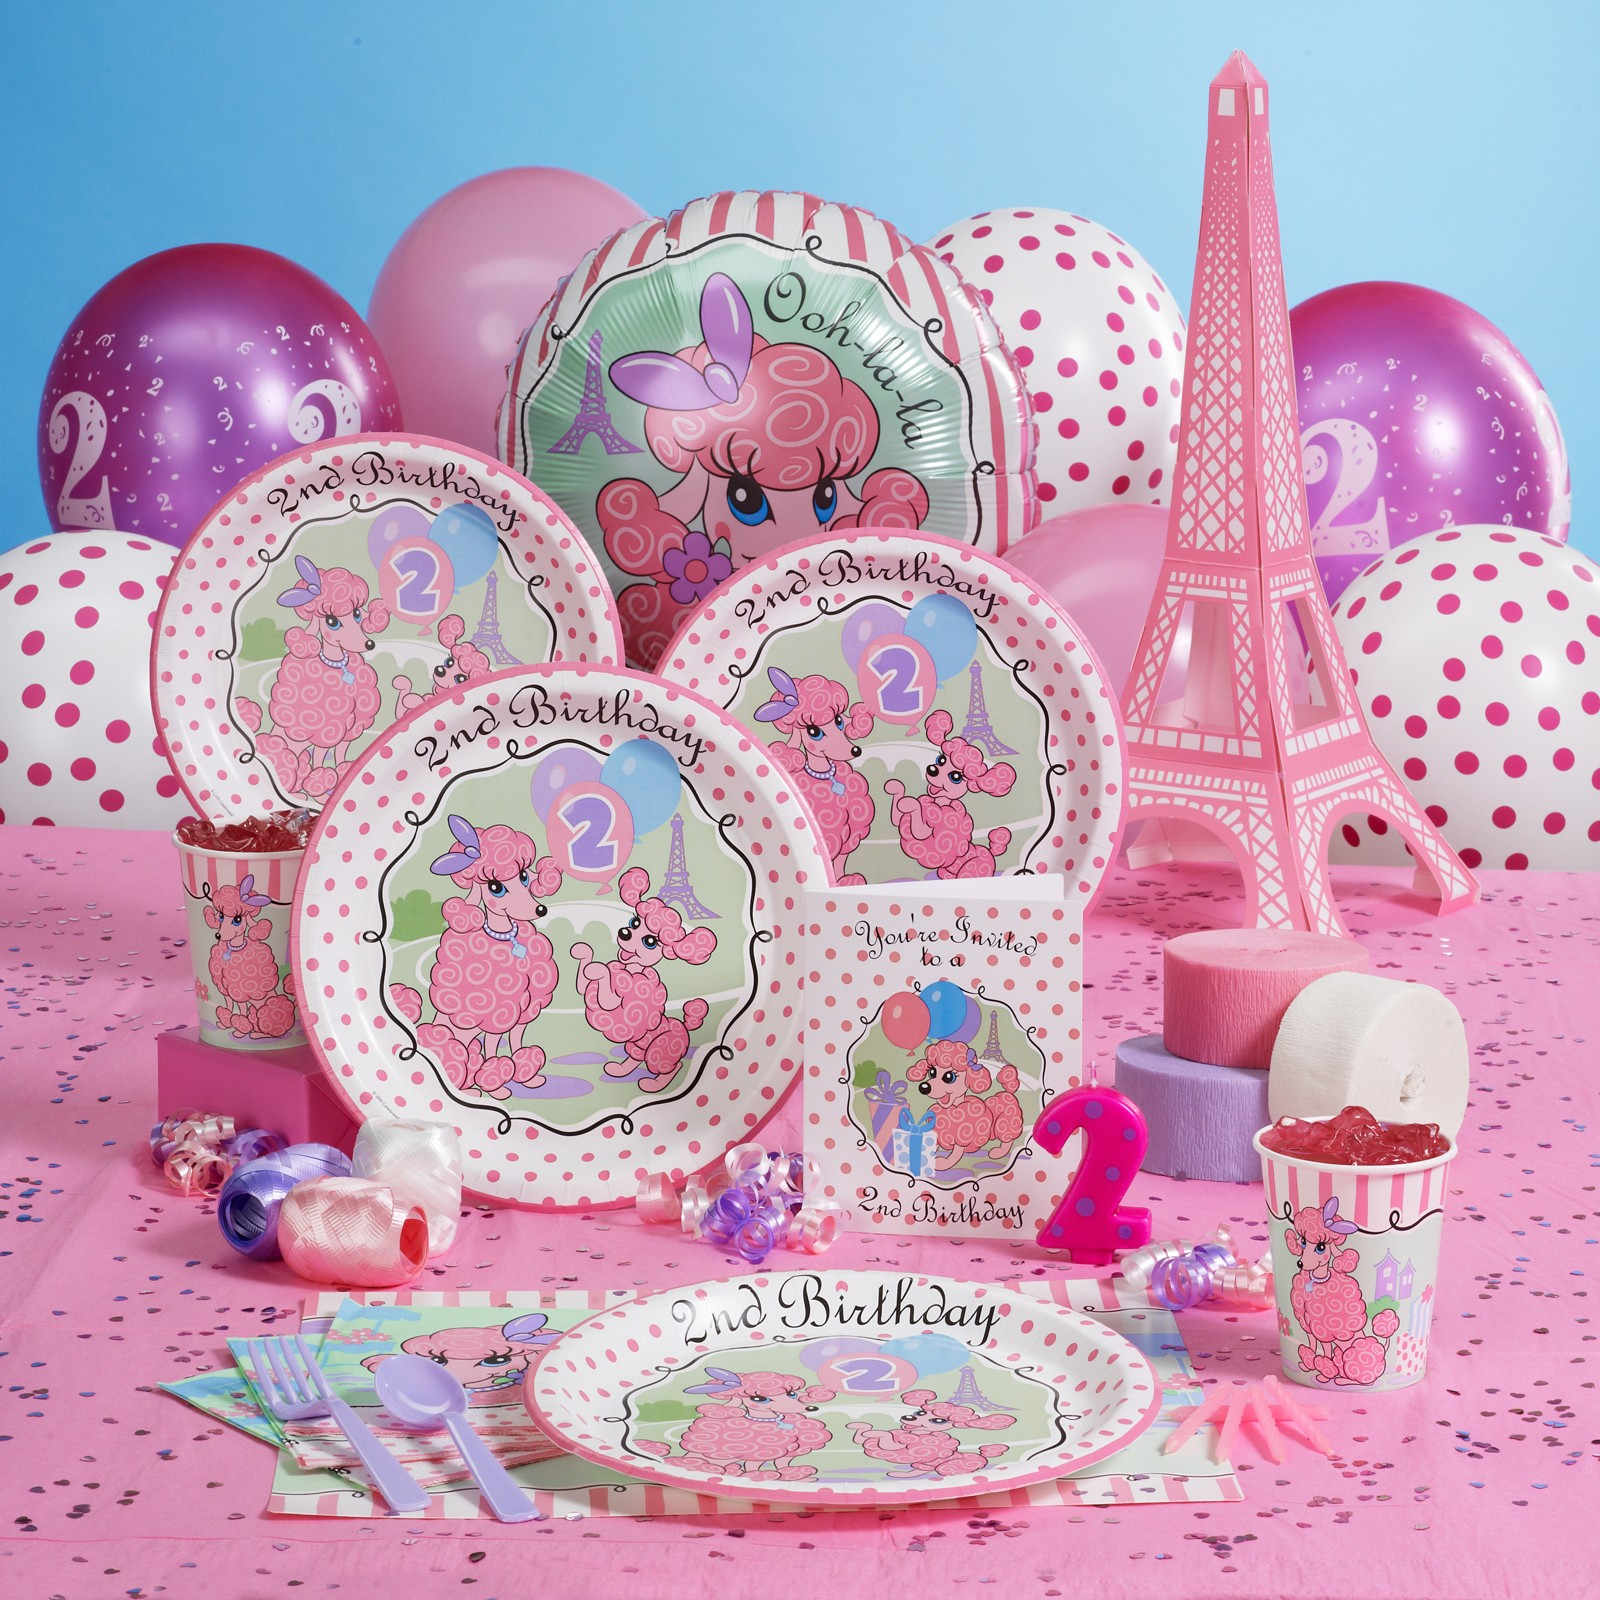 second birthday party themes ; 2nd-birthday-party-ideas-picture